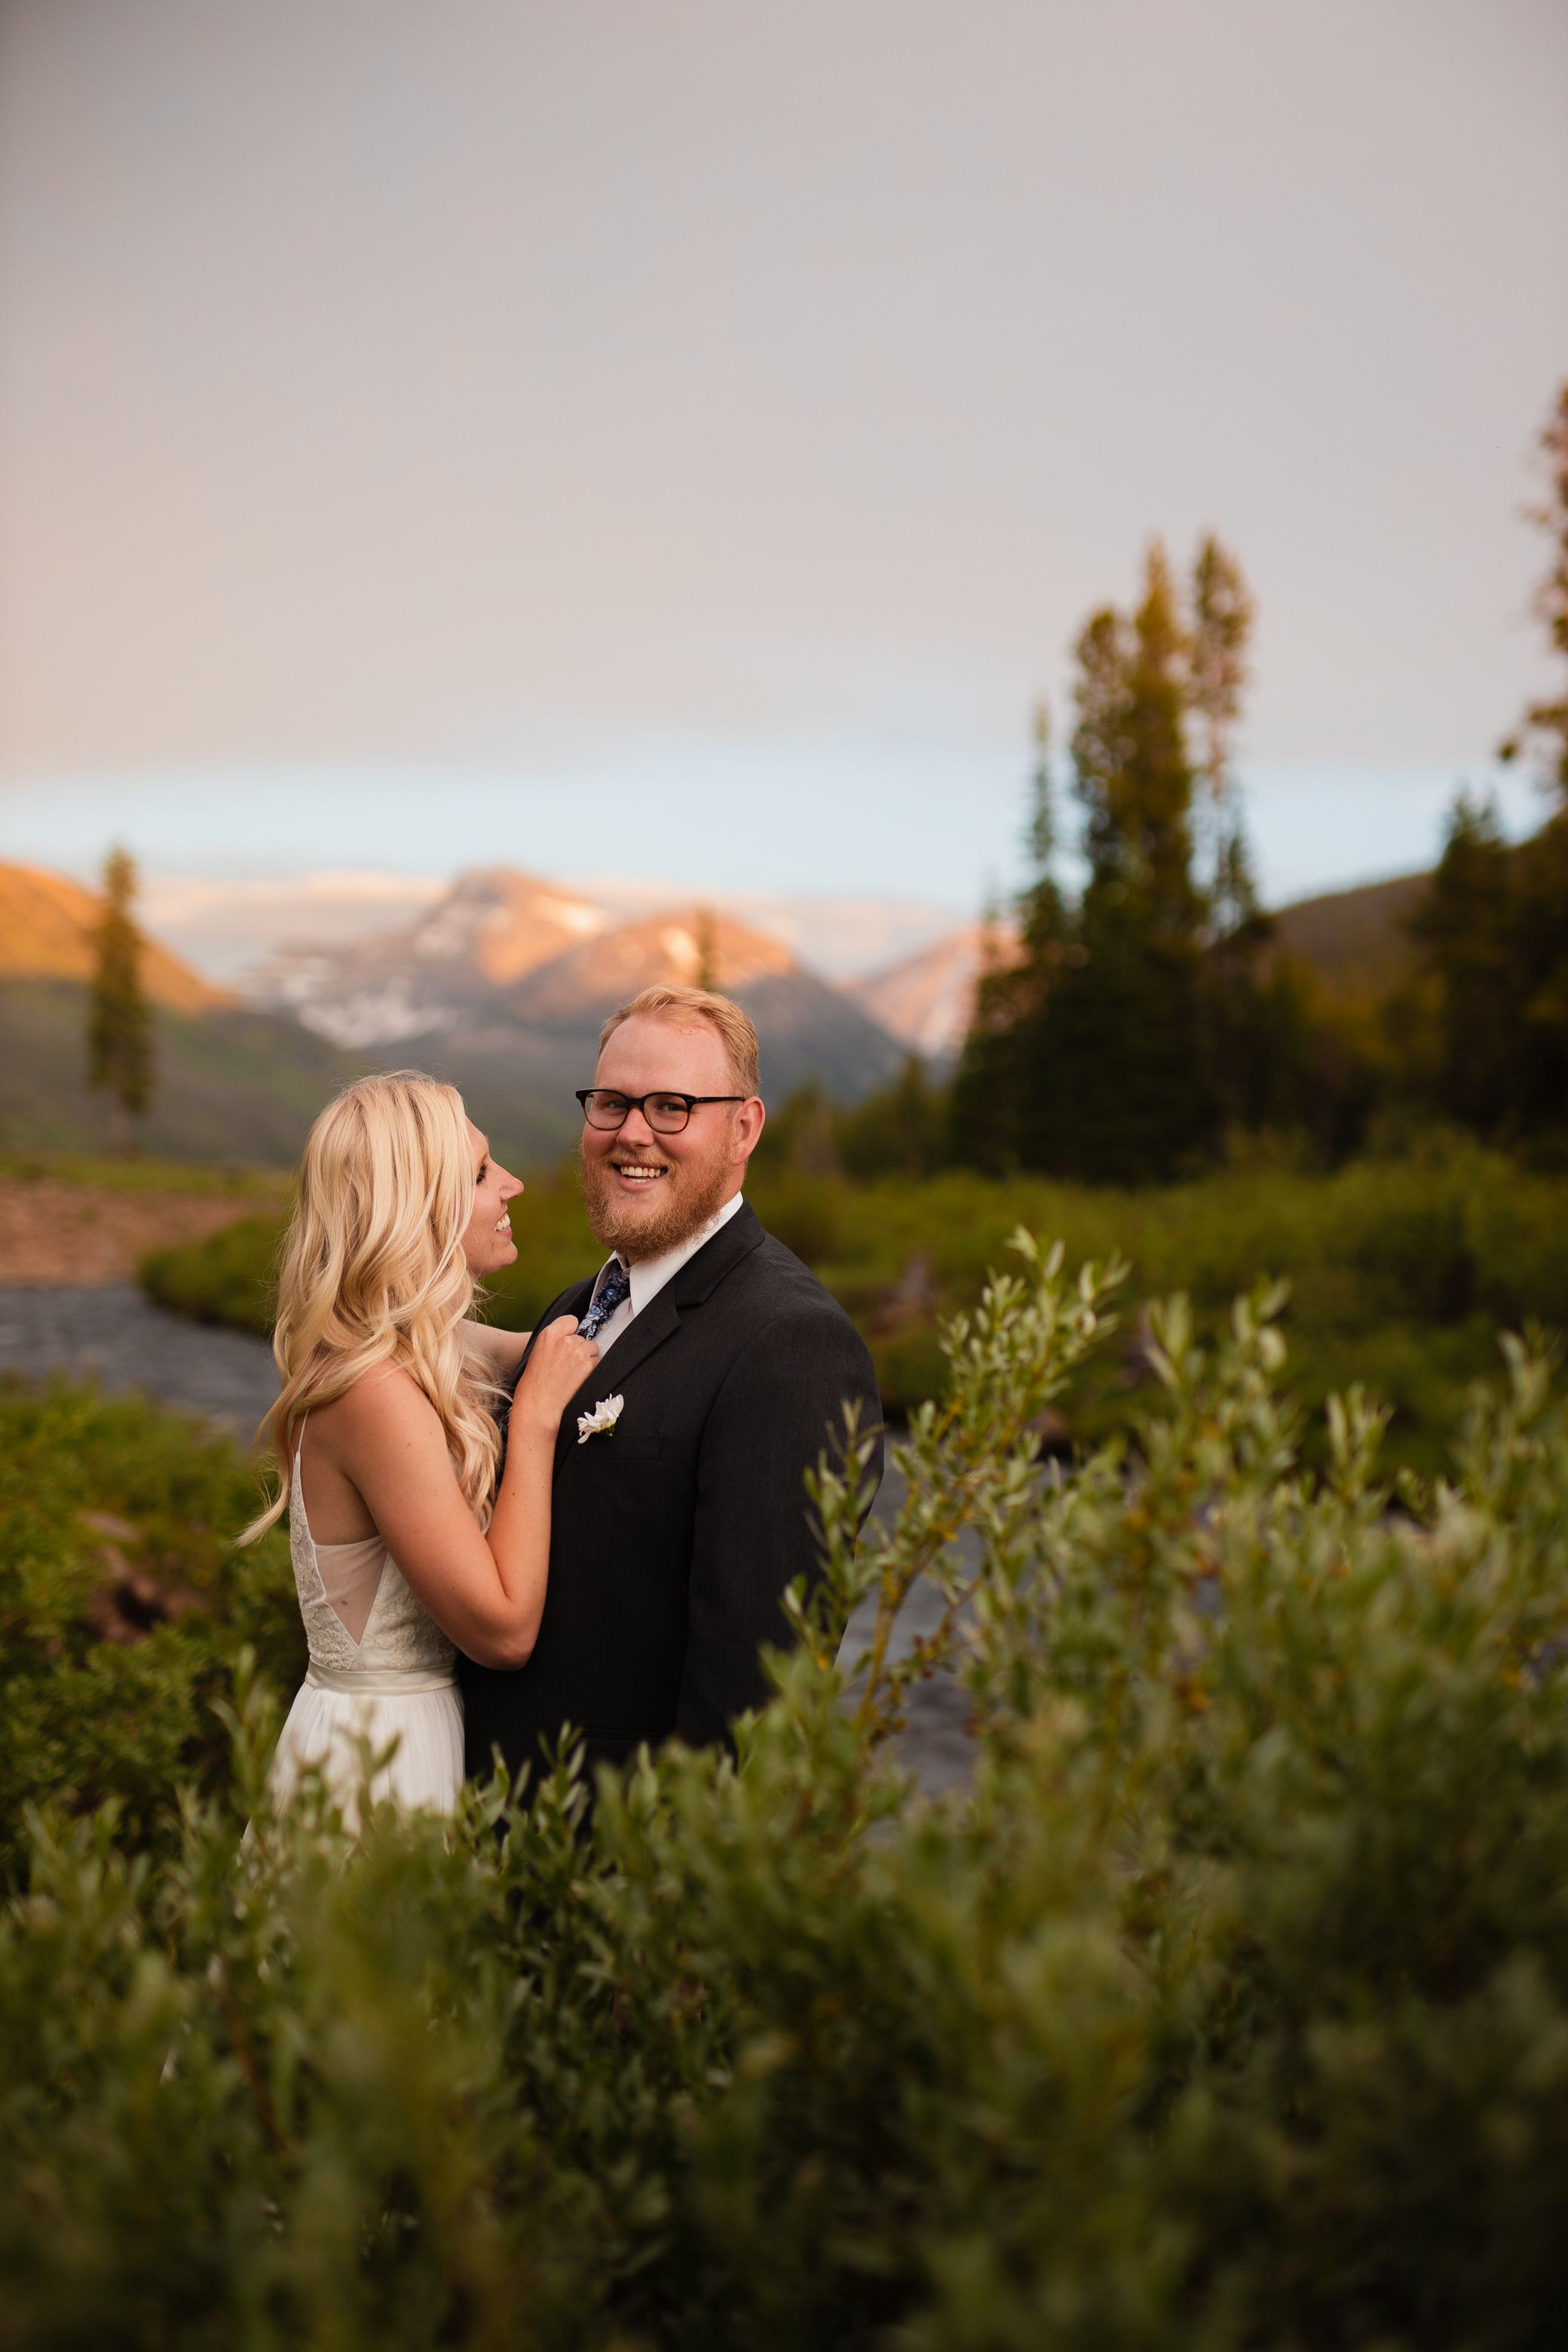 Cute couple in a meadow with mountain peaks, trees, and a river in the background.